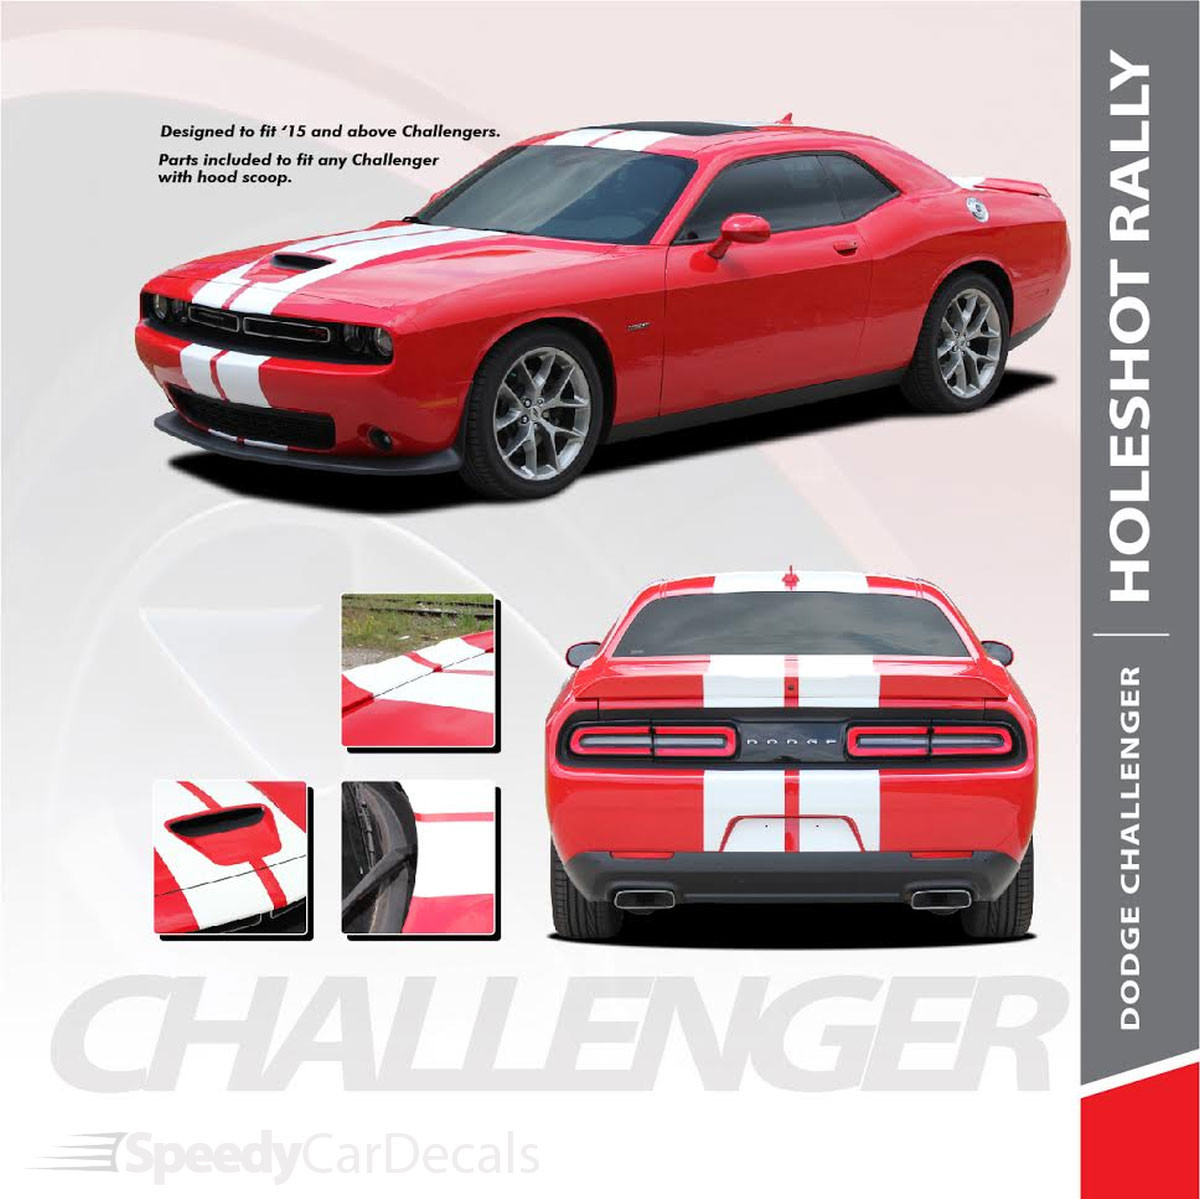 Dodge Challenger RT Hemi Stripes 15 CHALLENGE RALLY 2015-2020